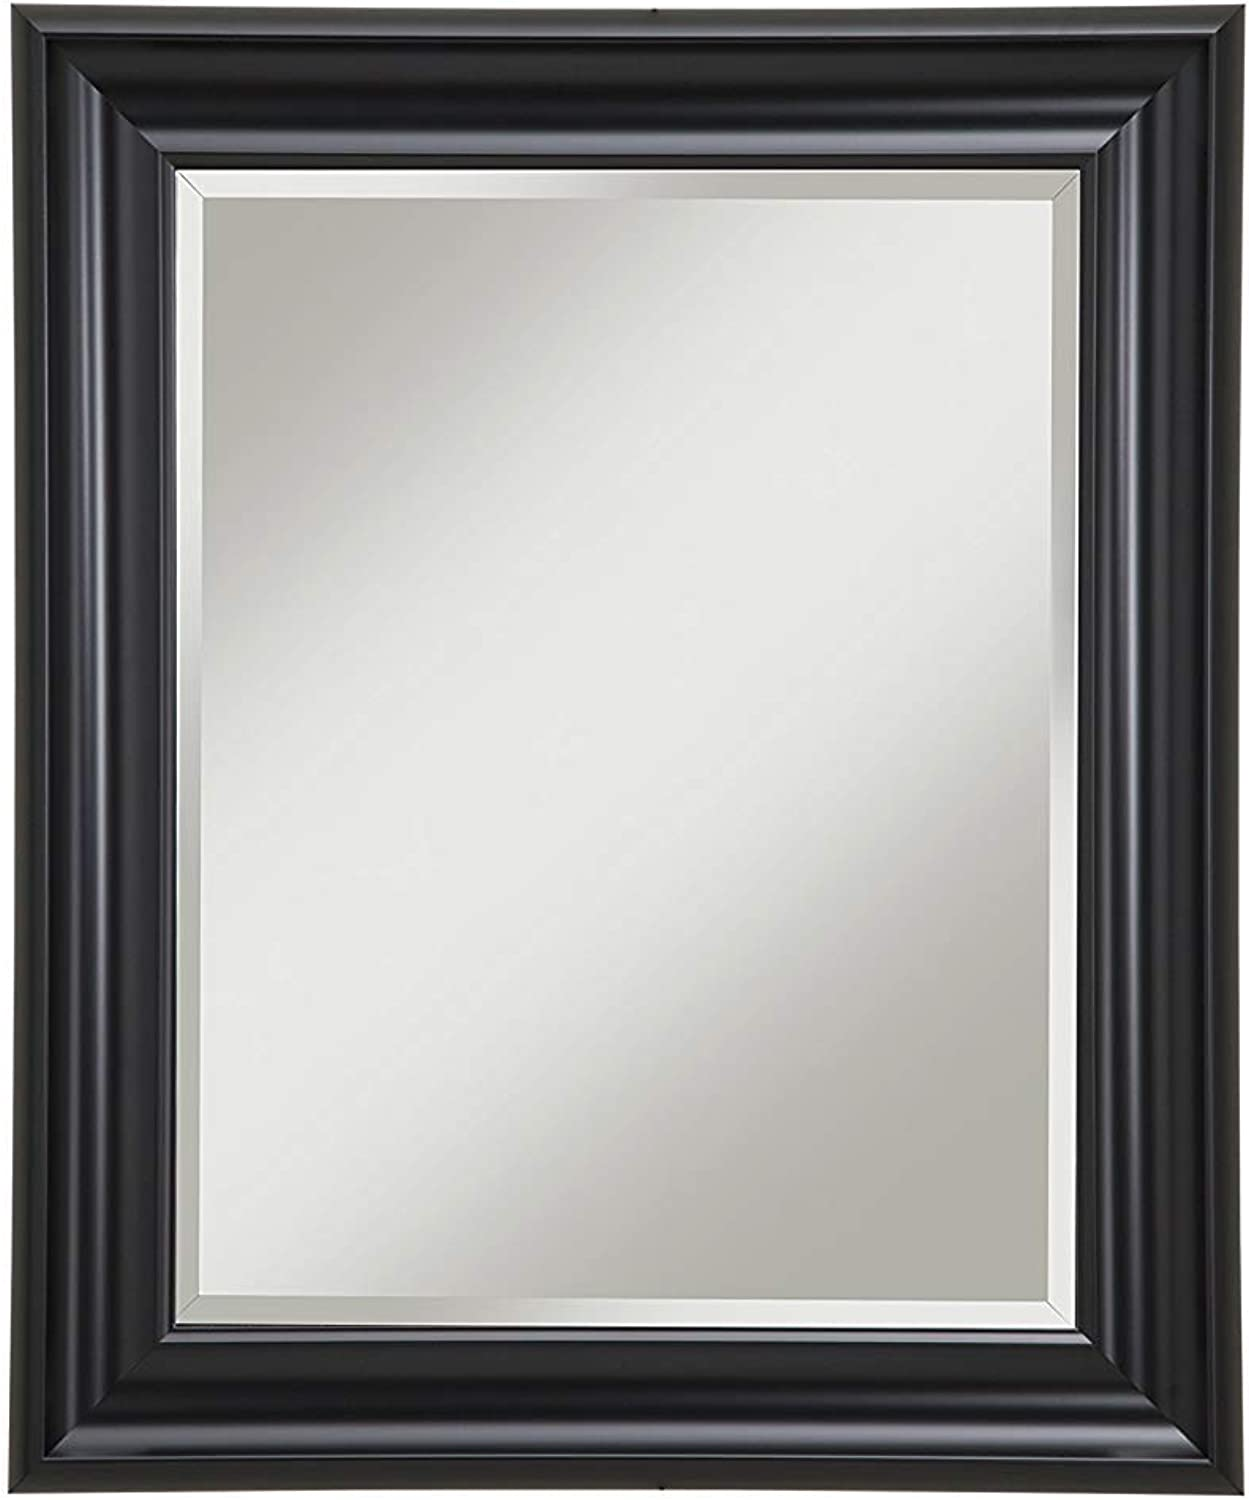 Benzara BM178079 Polystyrene Framed Wall Mirror with Beveled Glass, Black